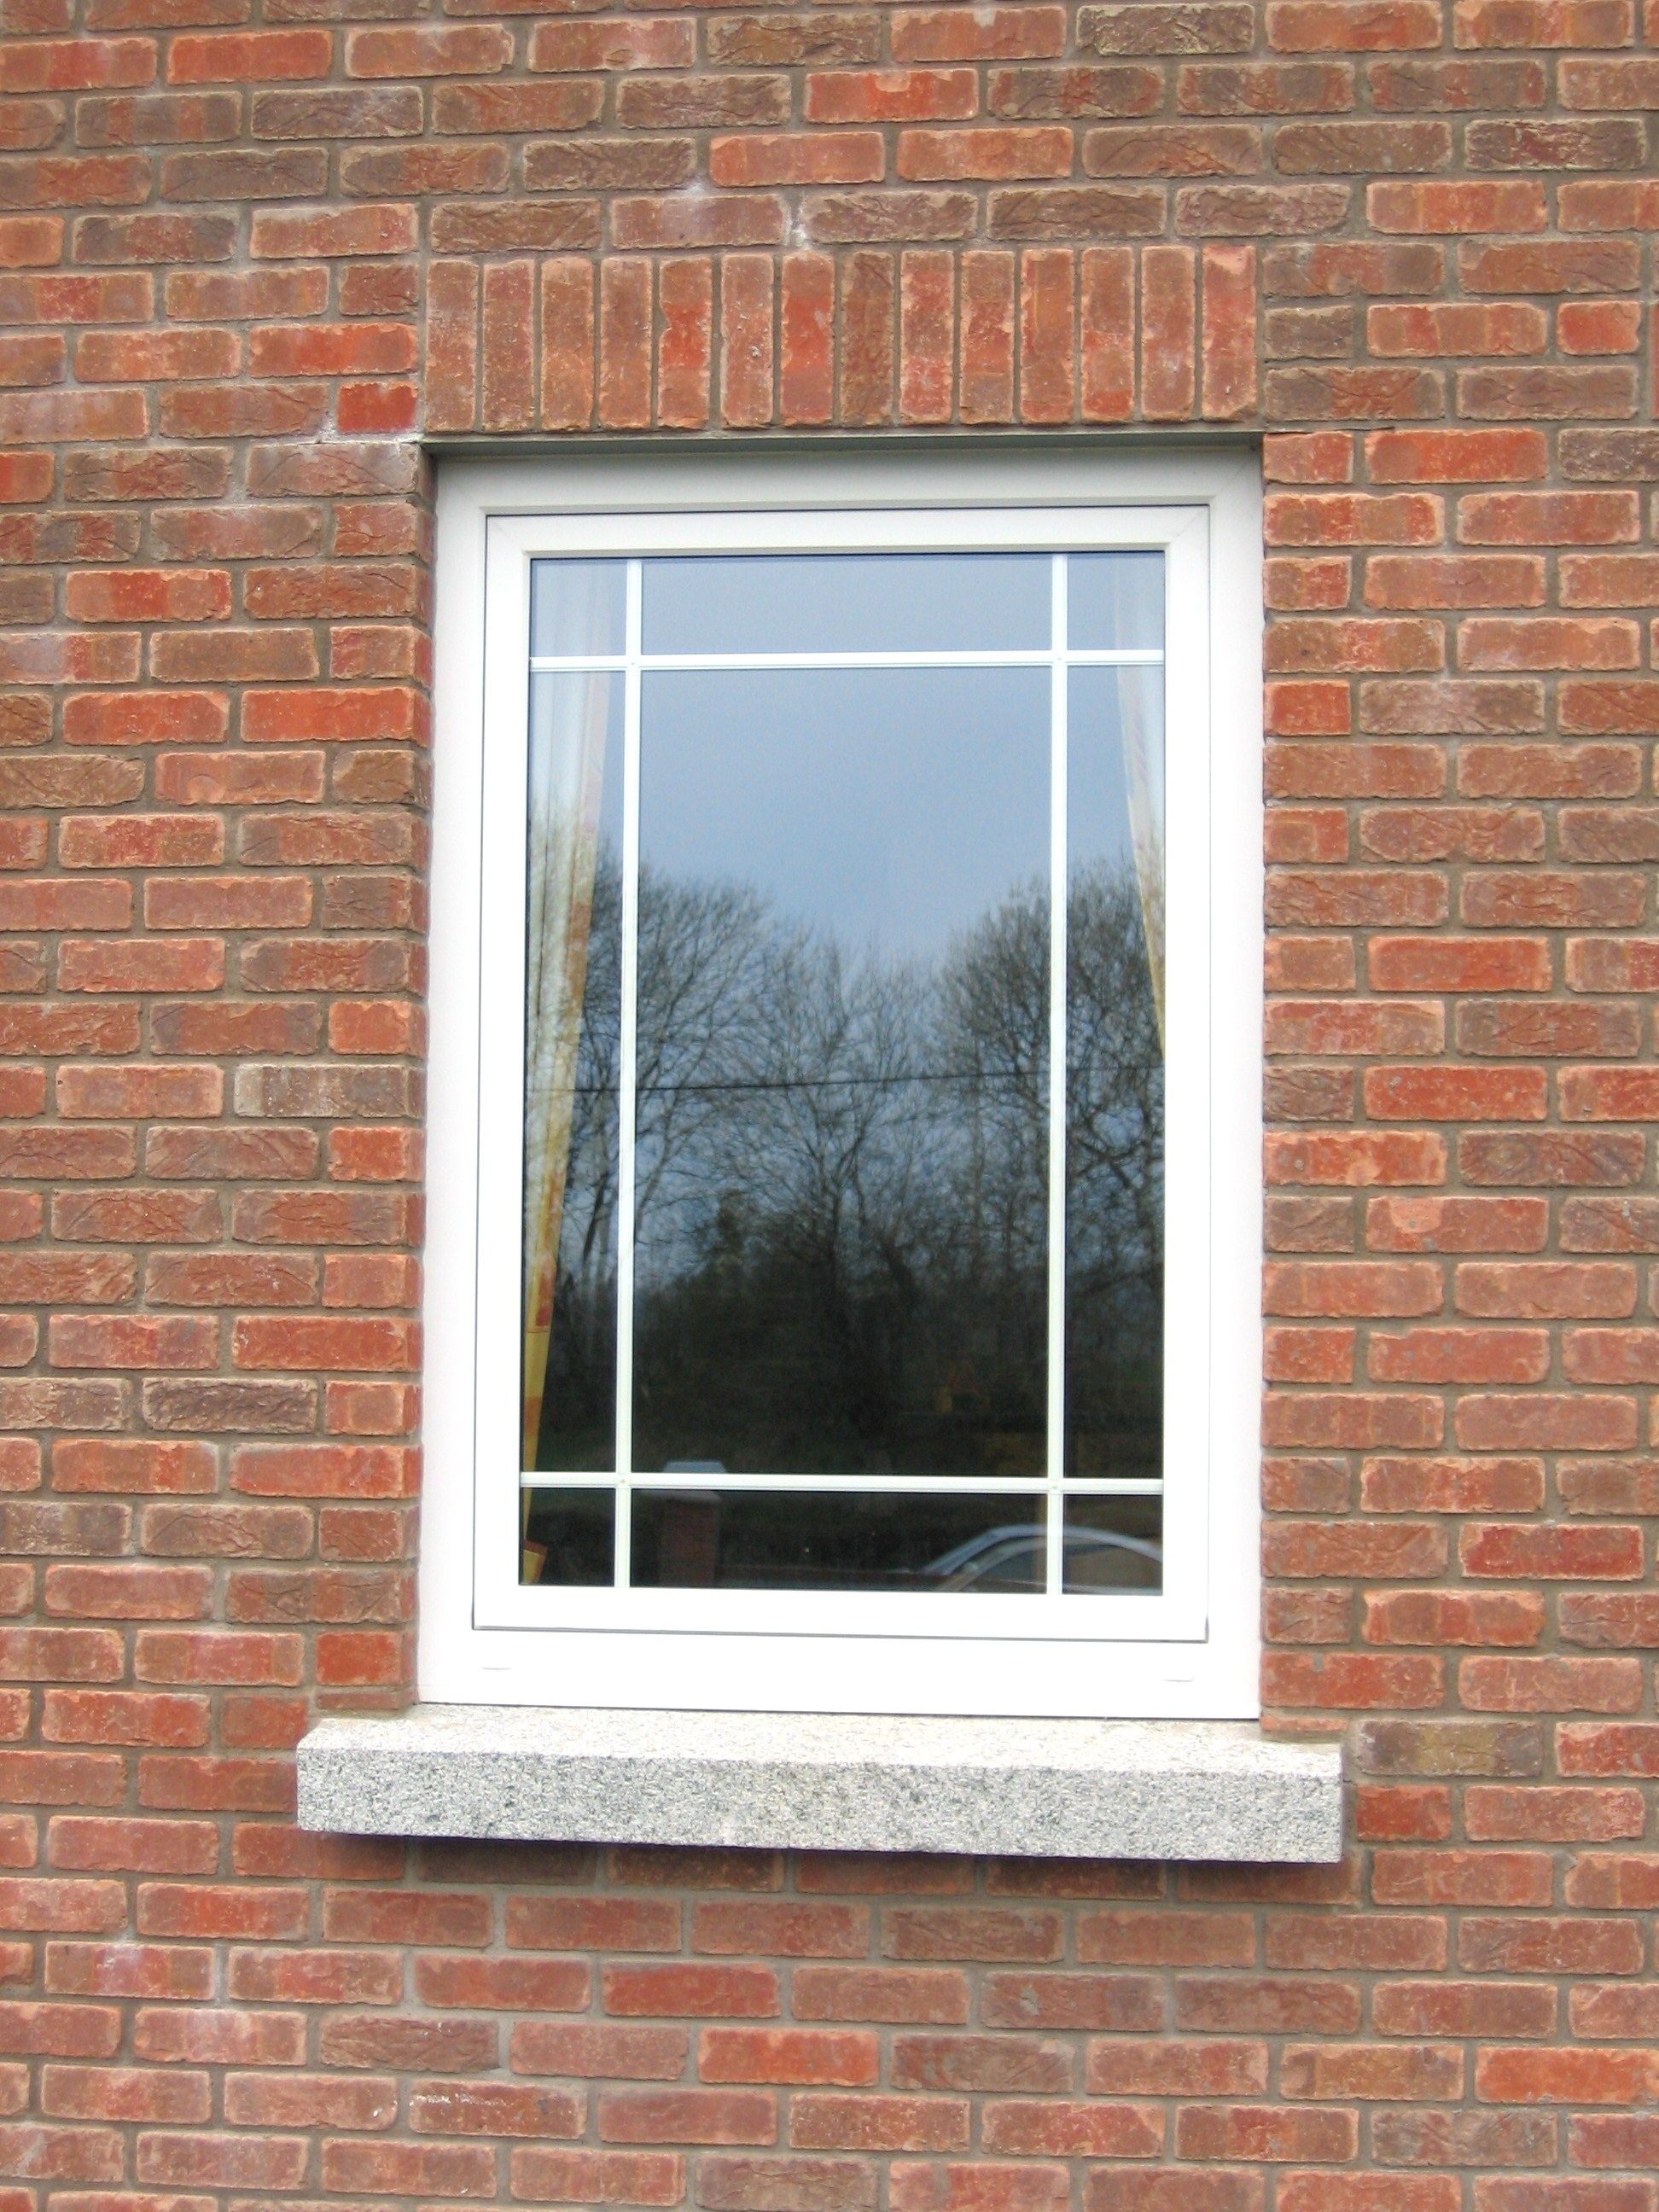 Windowsill designs exterior google search windows for Exterior window design